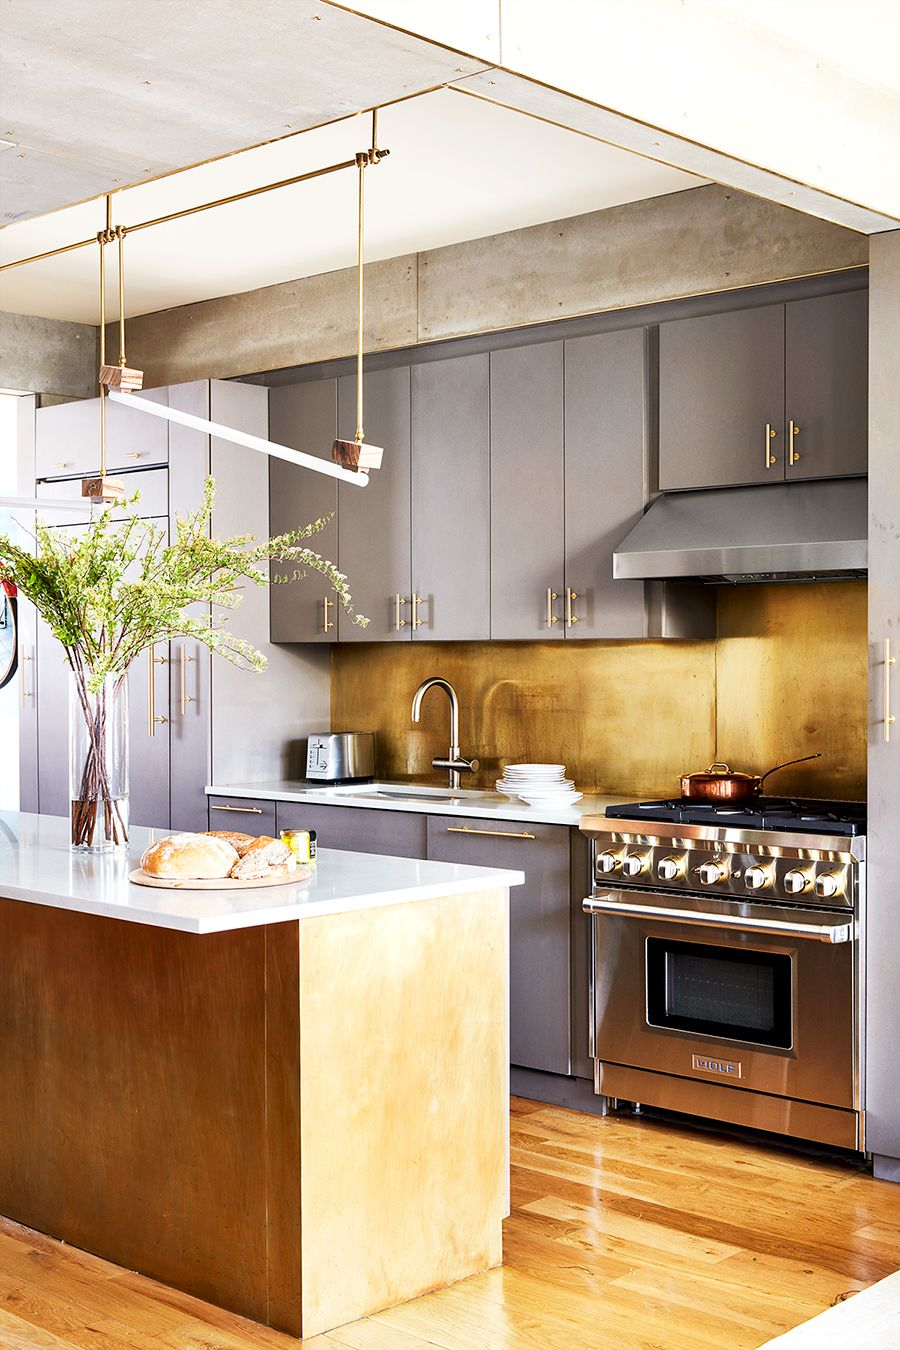 54 Best Small Kitchen Design Ideas - Decor Solutions for ... on Best Small Kitchens  id=89888